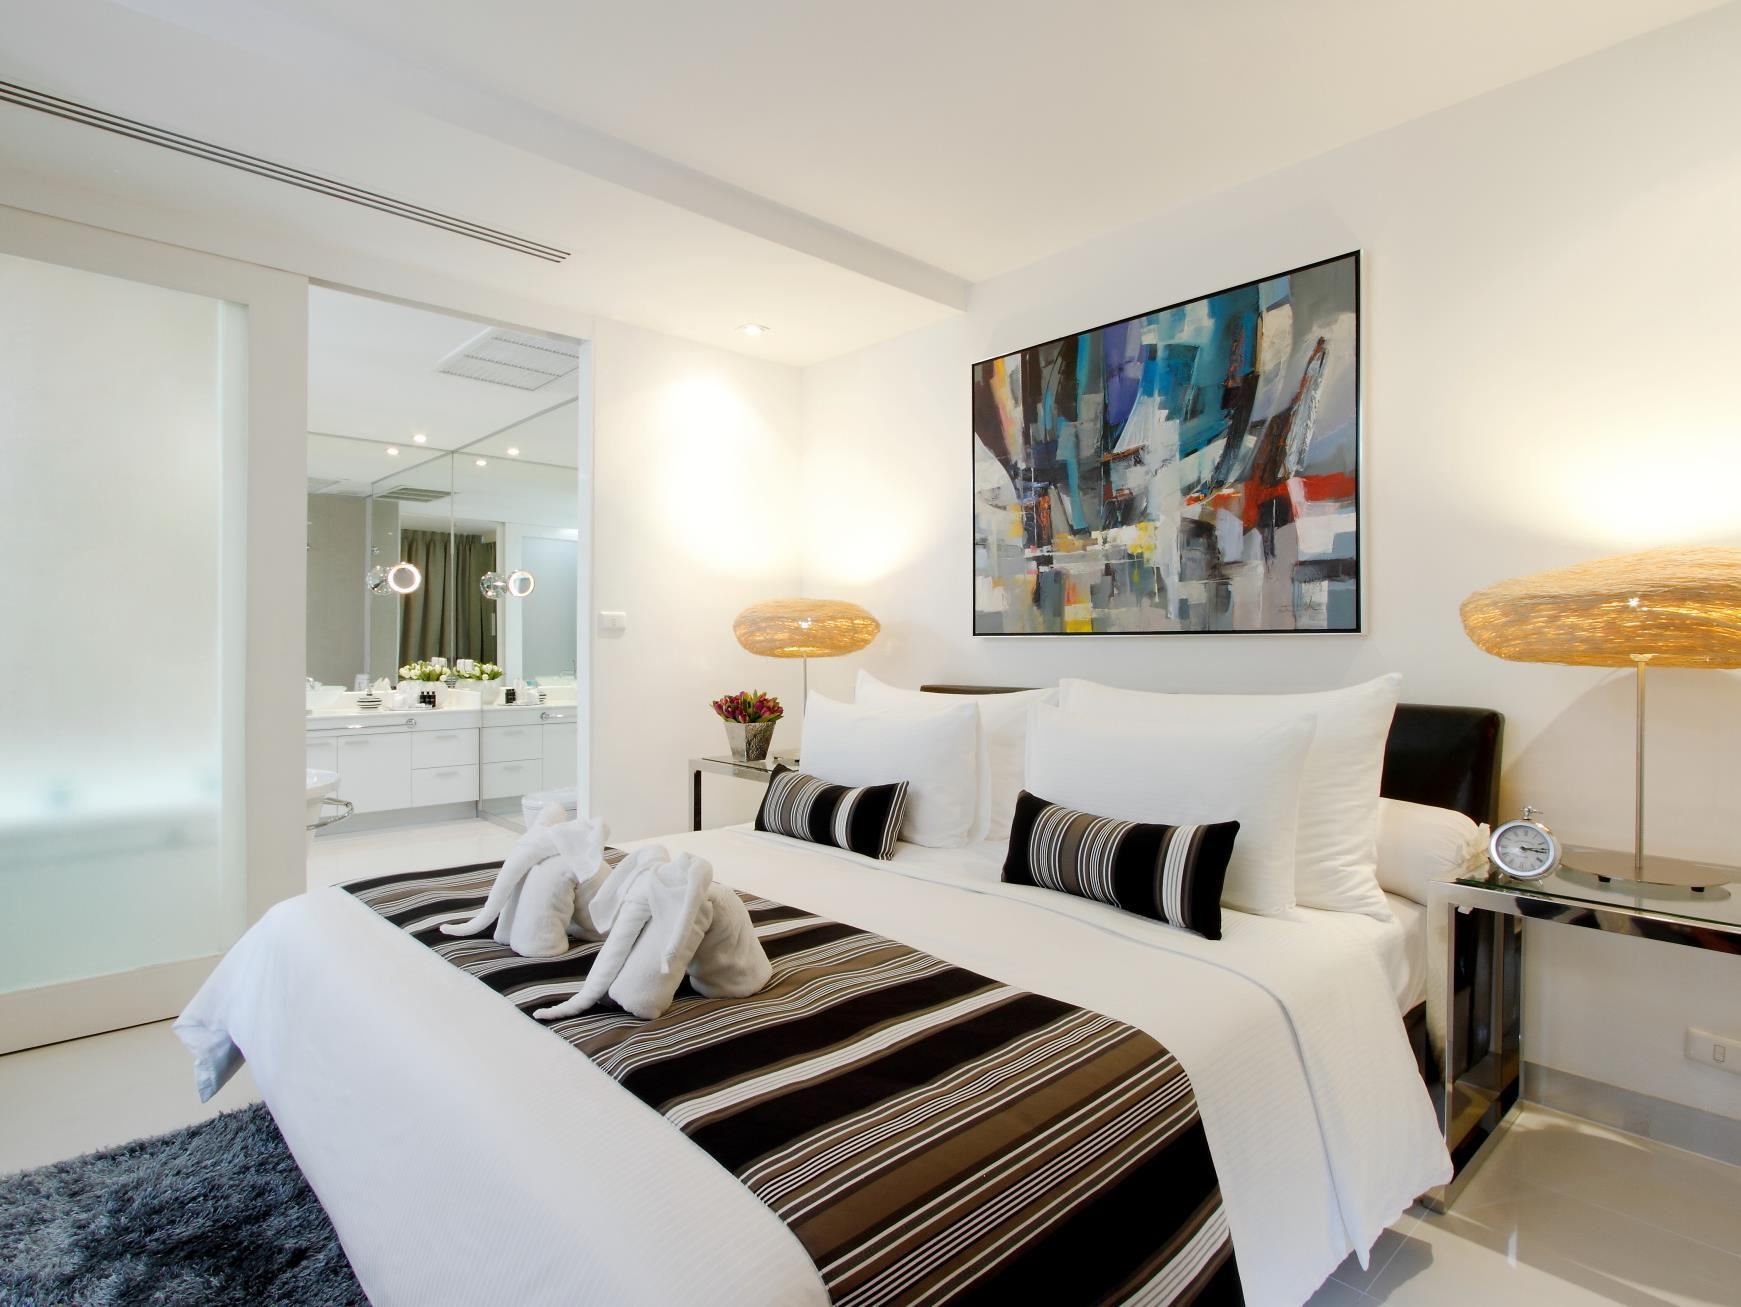 byd lofts boutique hotel & serviced apartment